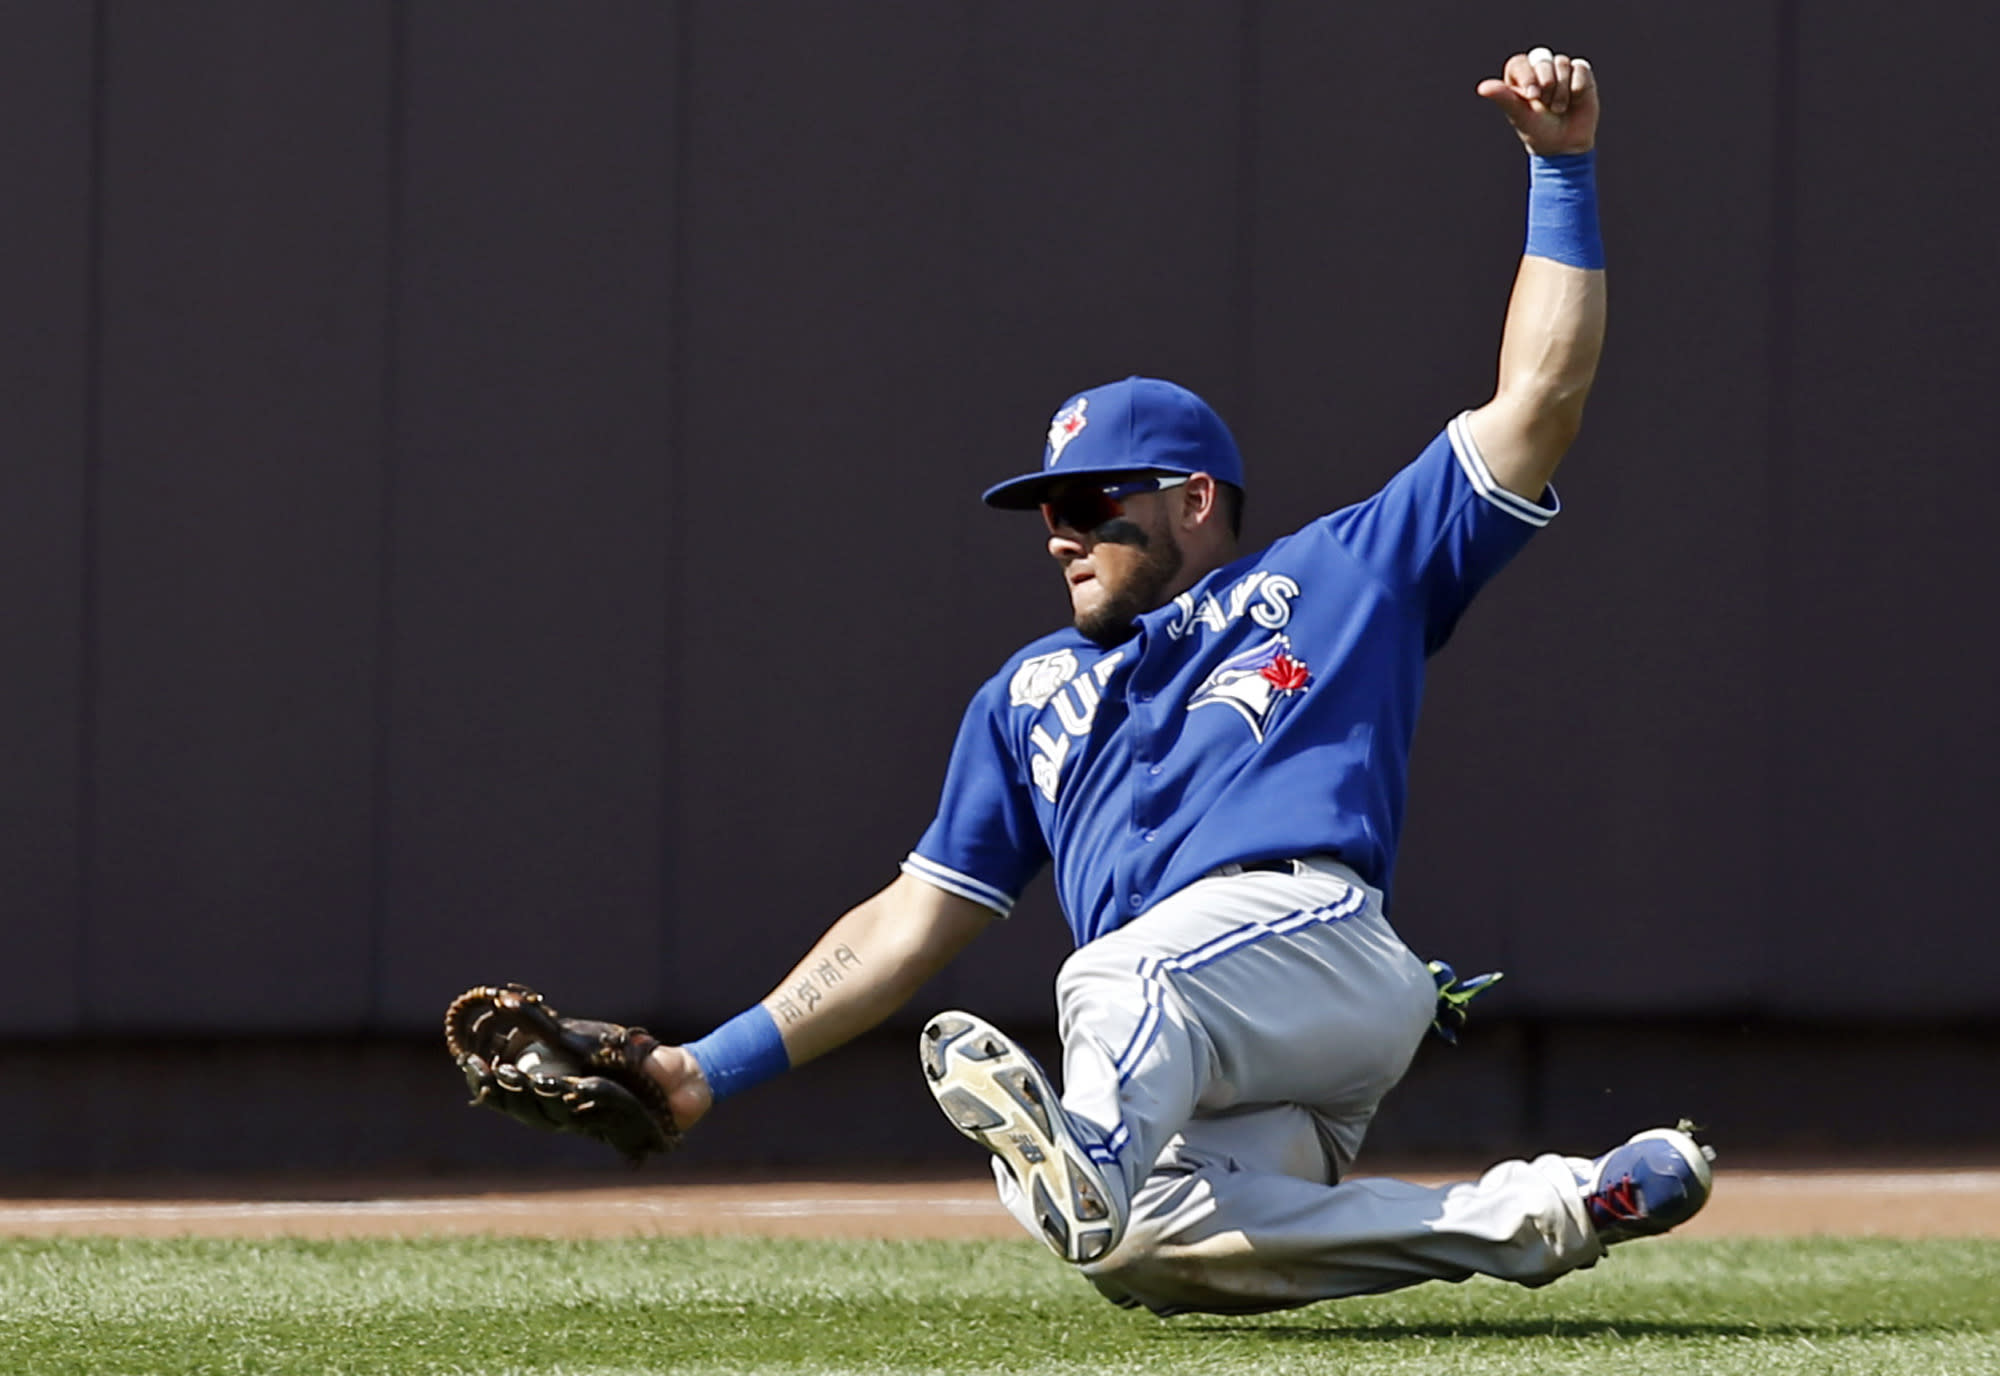 AP source: White Sox reach $42M deal with Cabrera